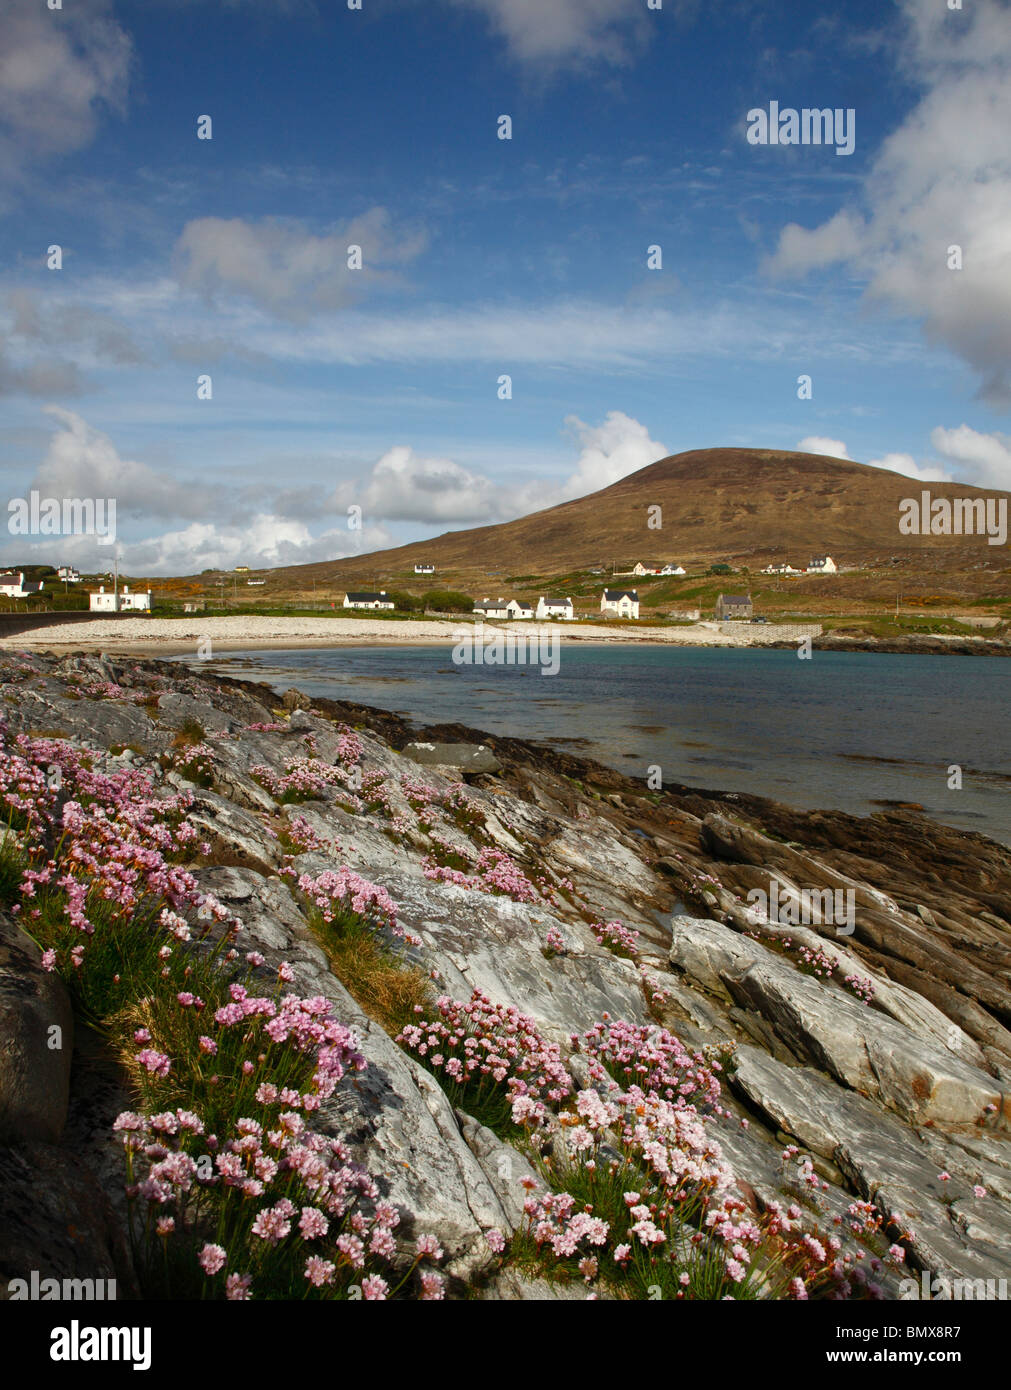 Dooega bay and beach with Knockmore mountain and foreground thrift flowers,Achill island,western Ireland,Eire. - Stock Image